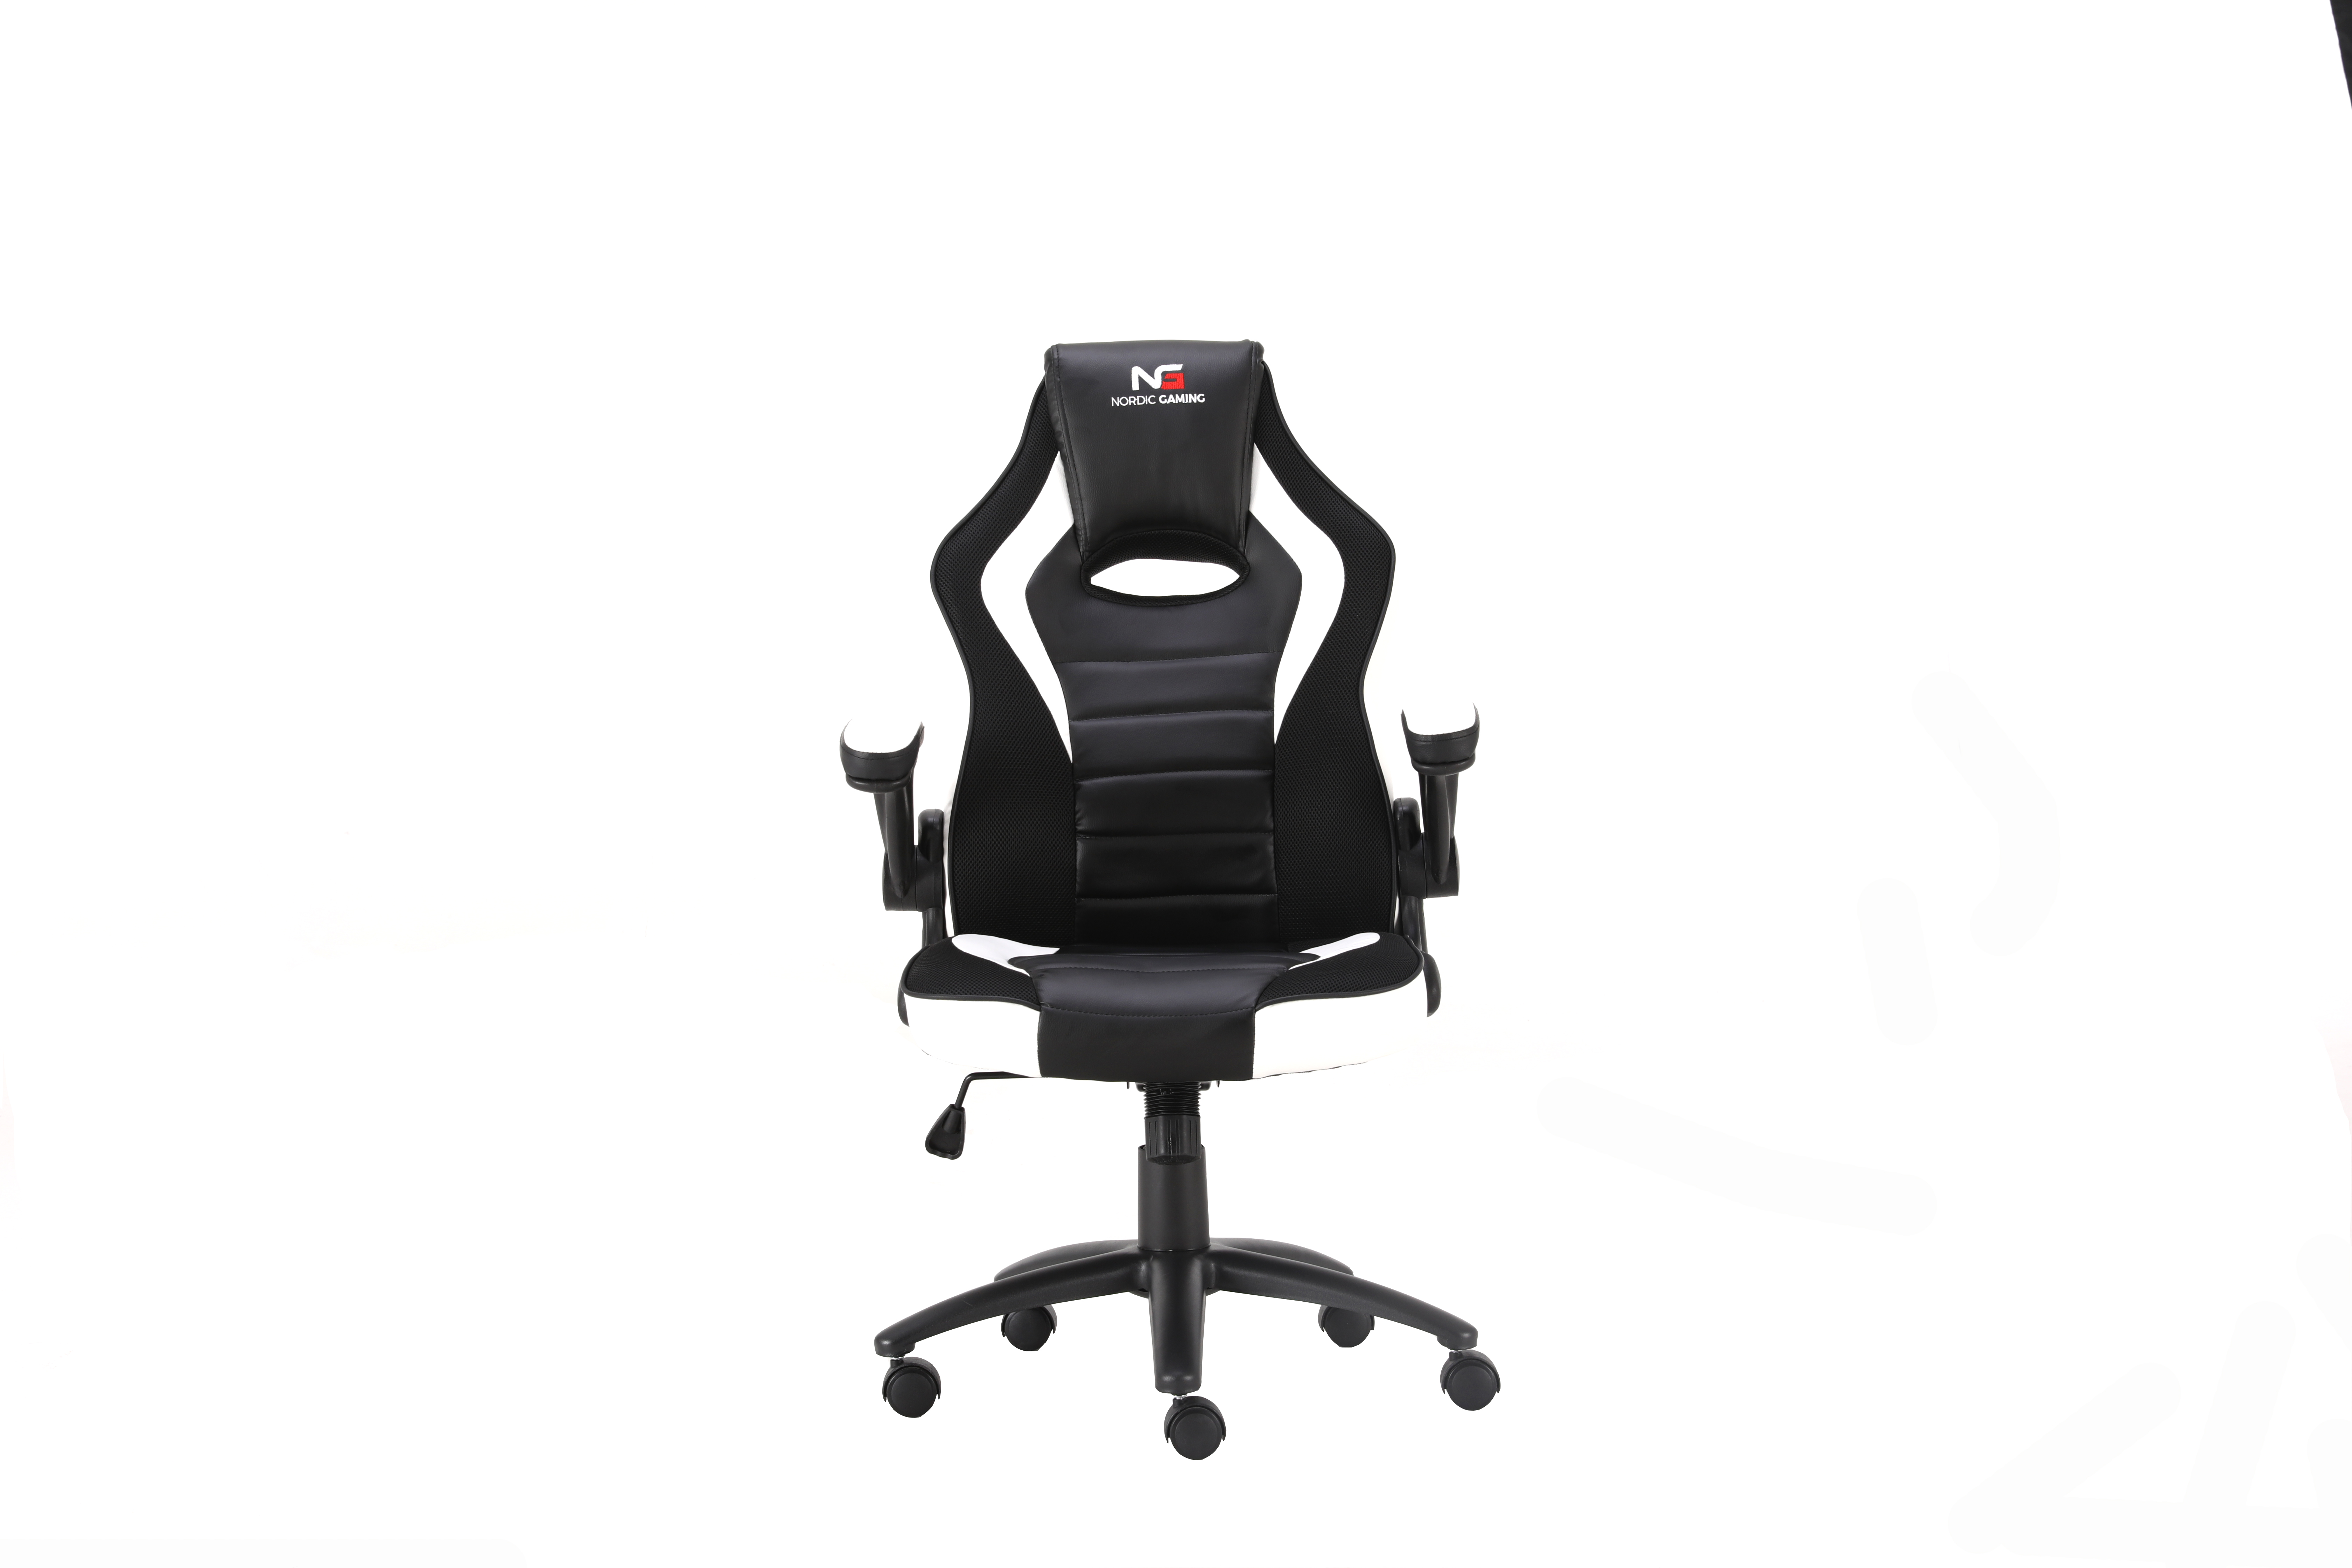 Nordic Gaming Charger V2 Gaming Chair White Black